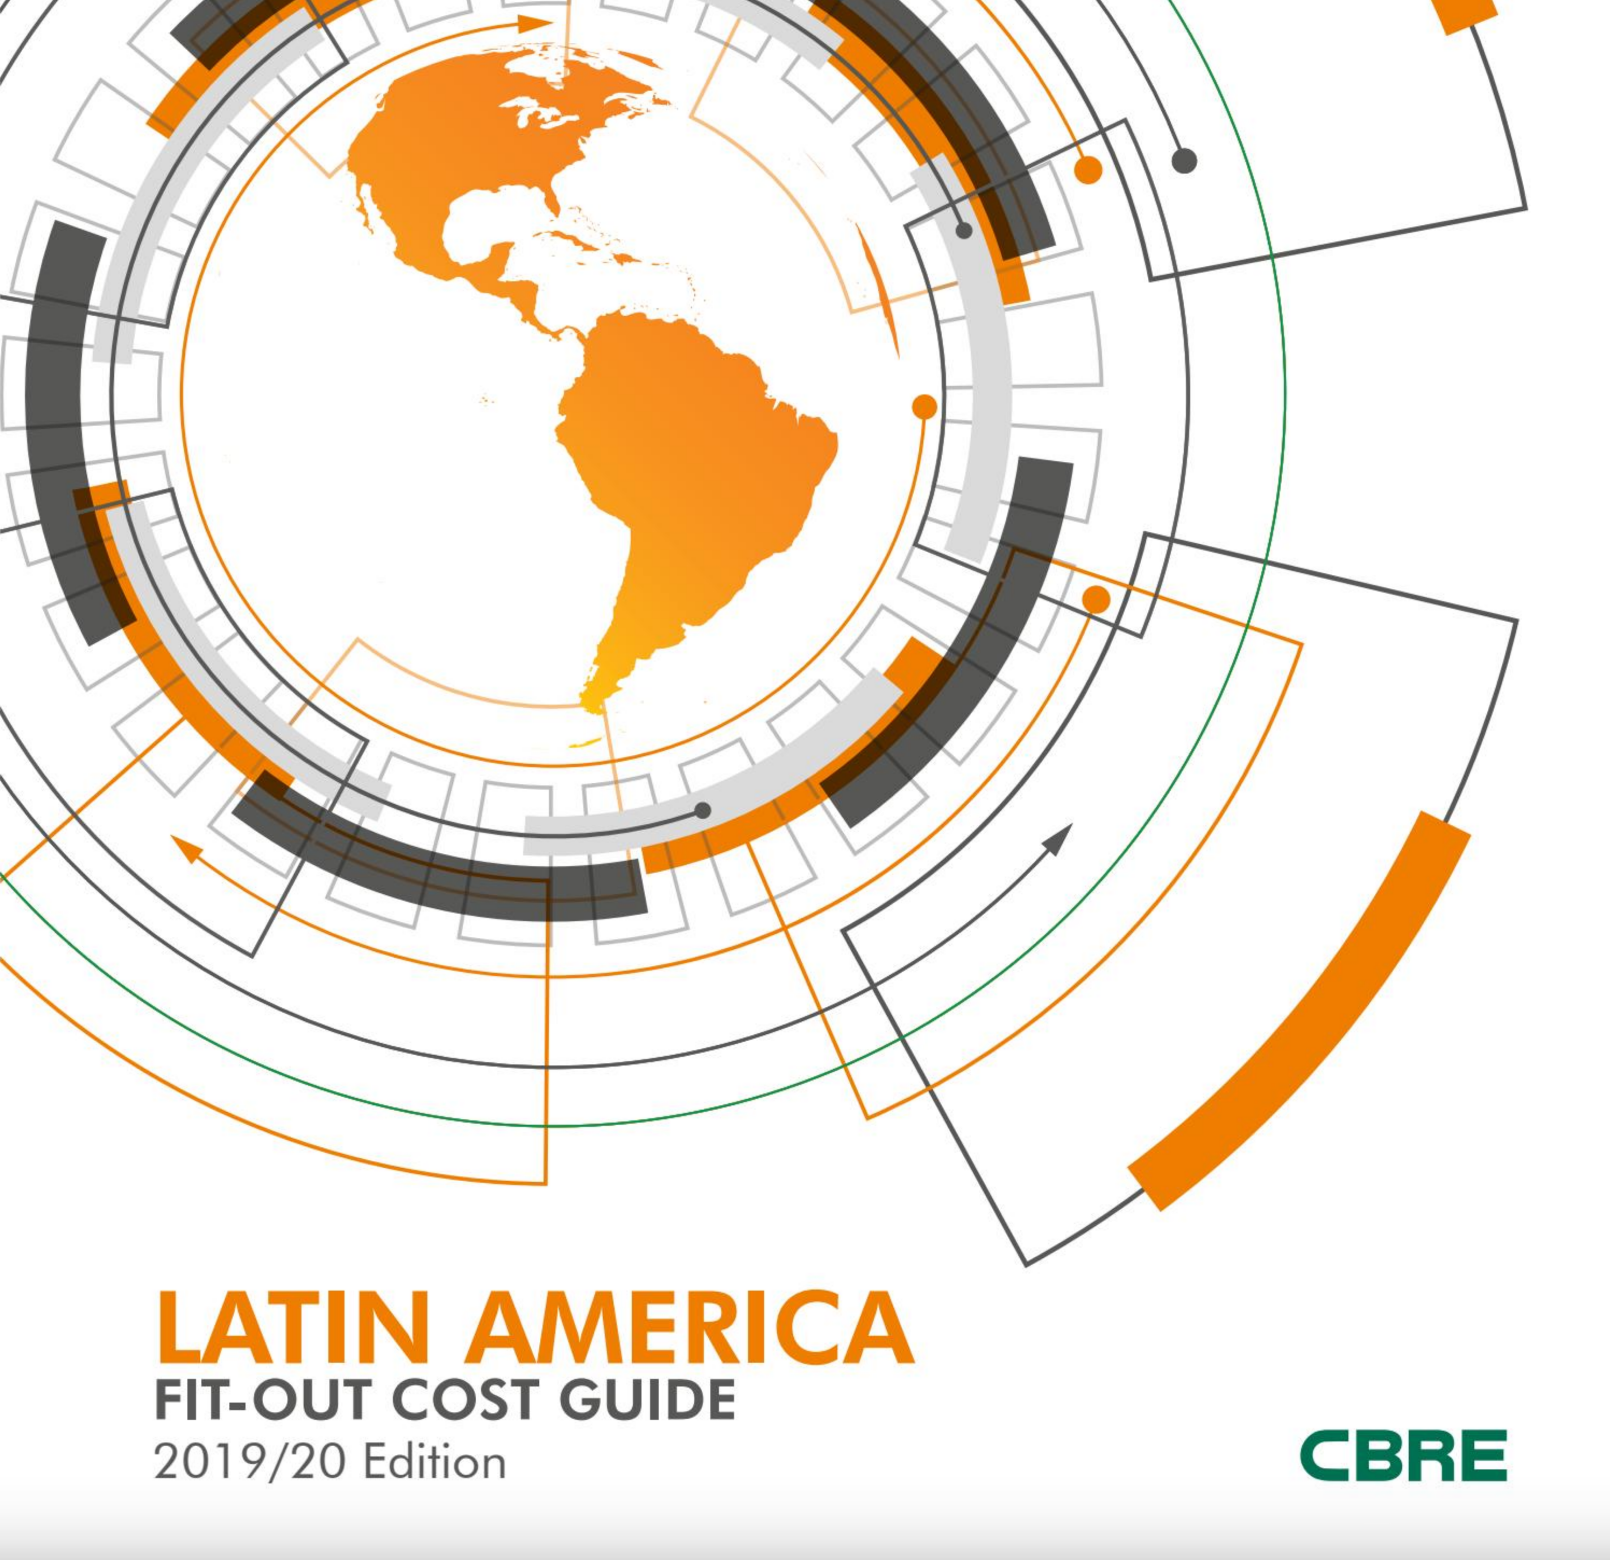 LATAM Fit-Out Cost Guide 2019/20